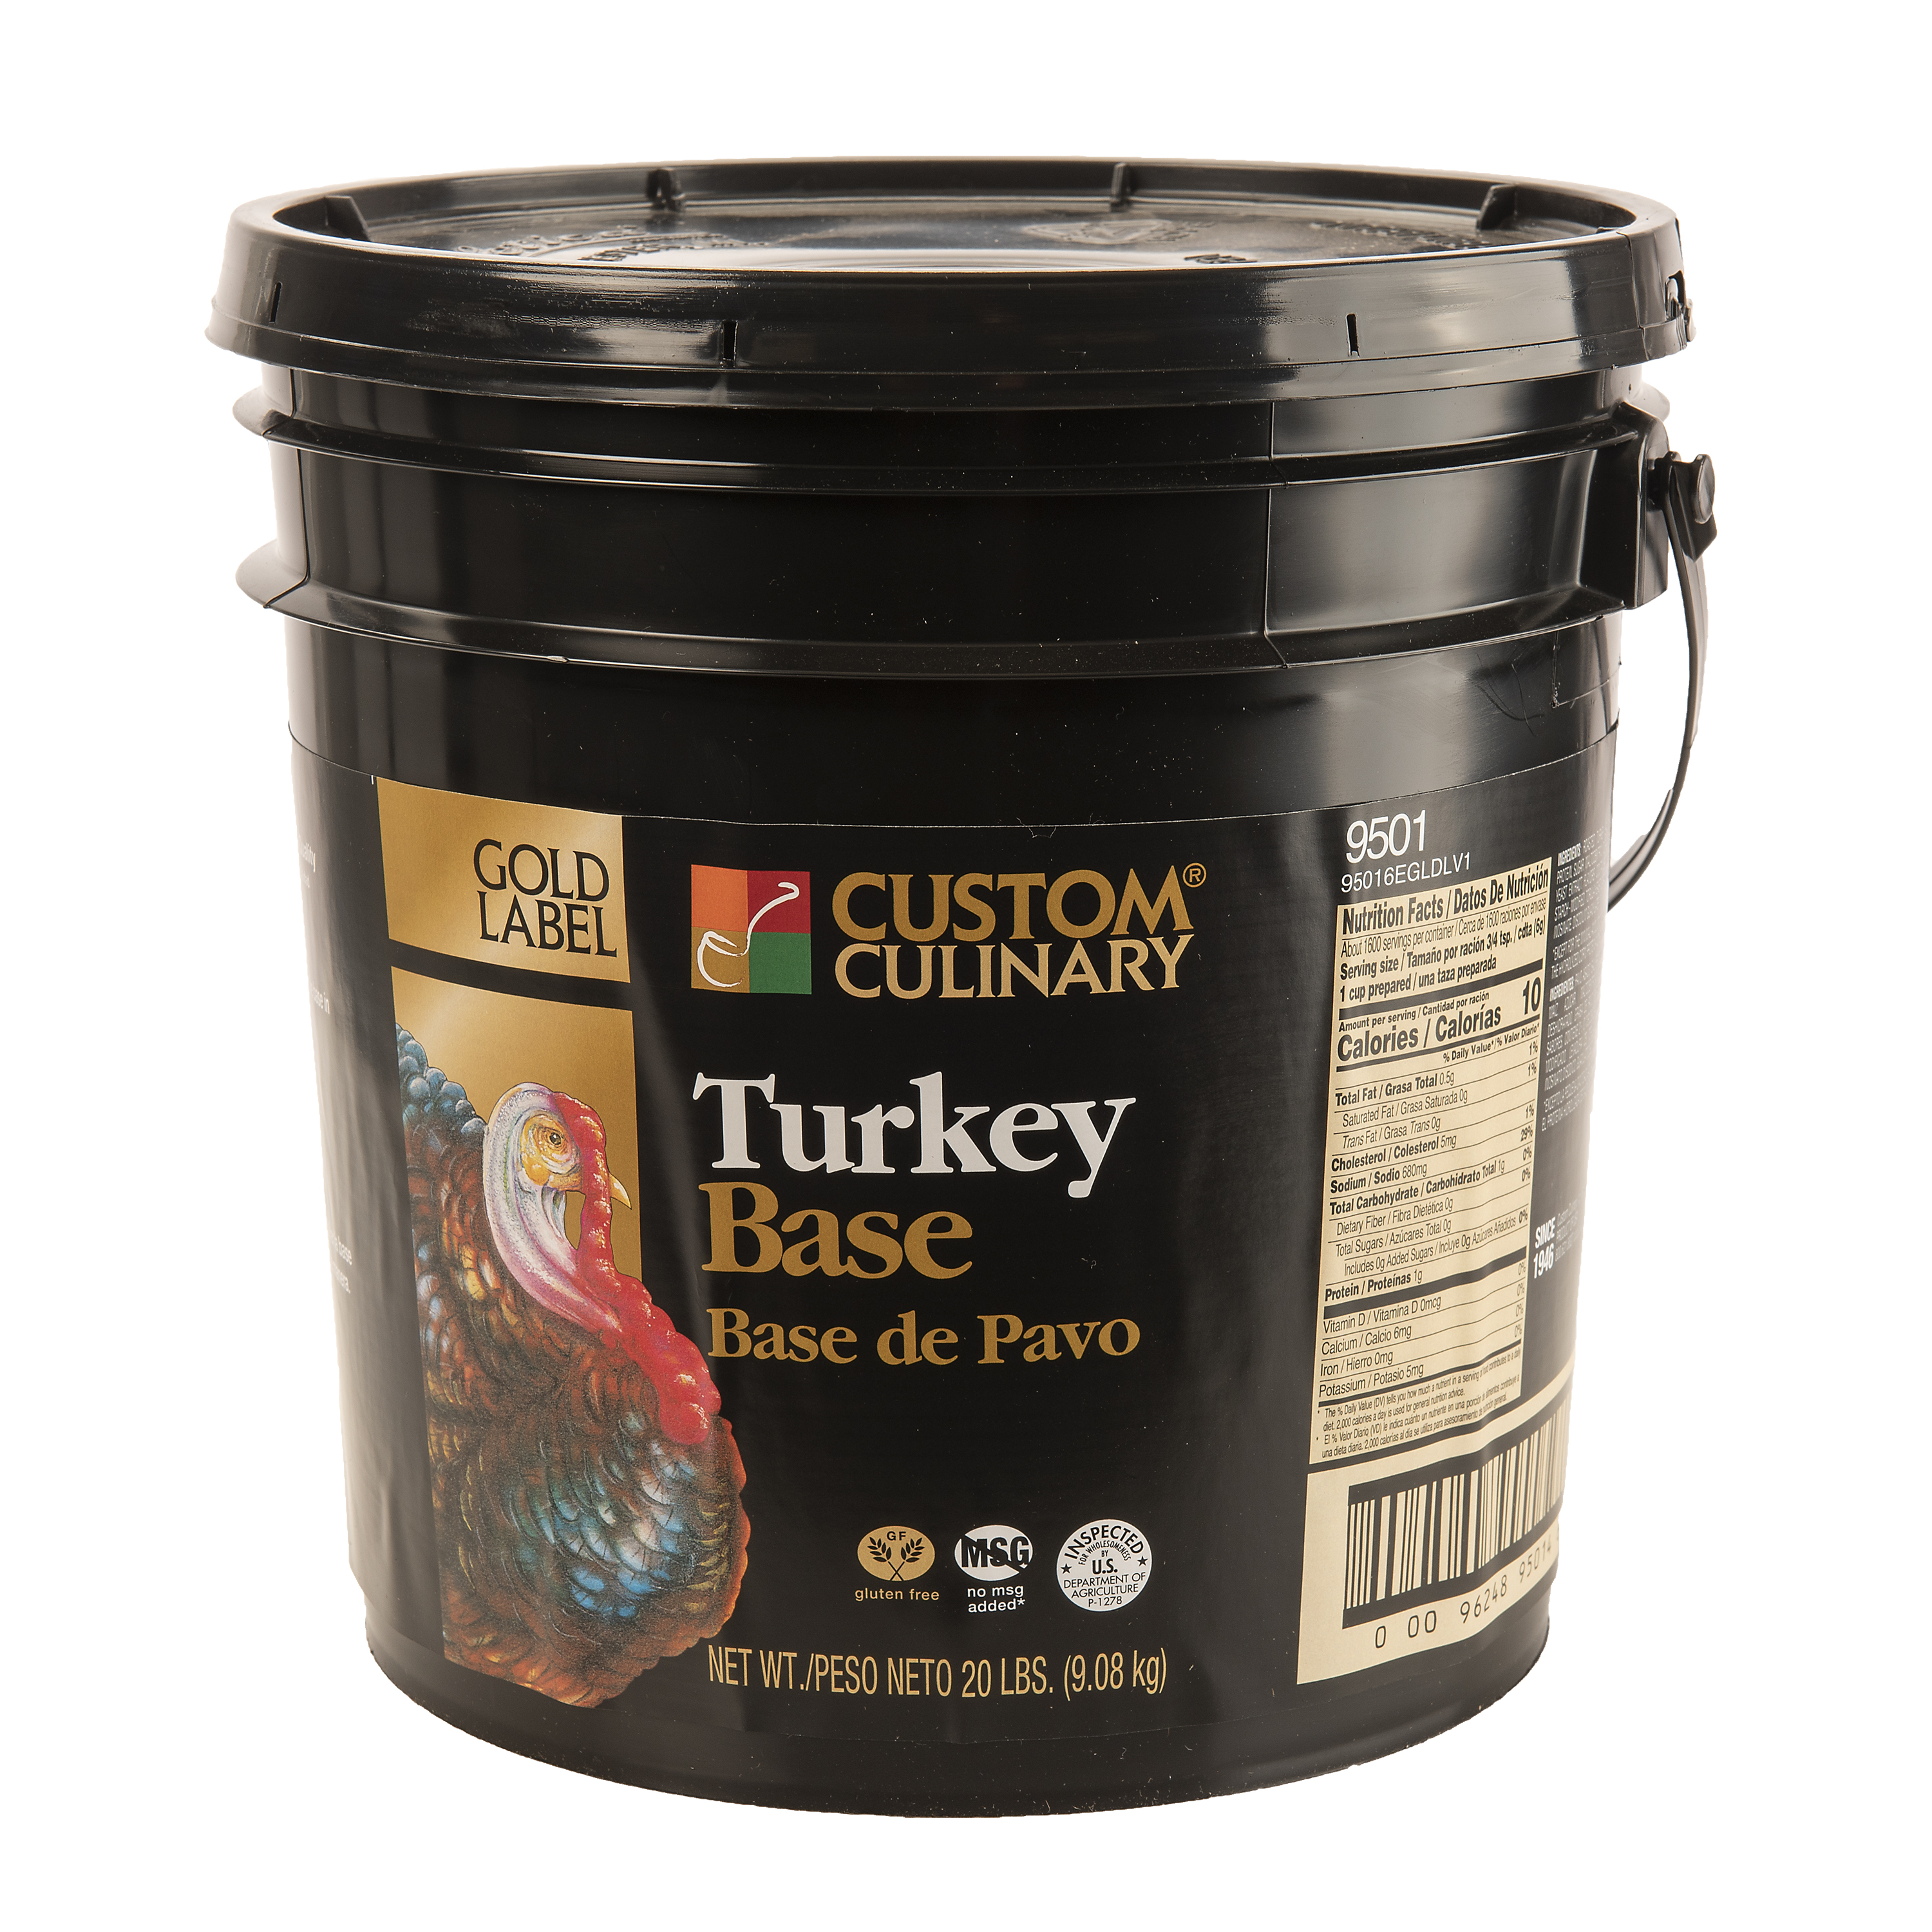 9501 - GOLD LABEL Turkey Base No MSG Added